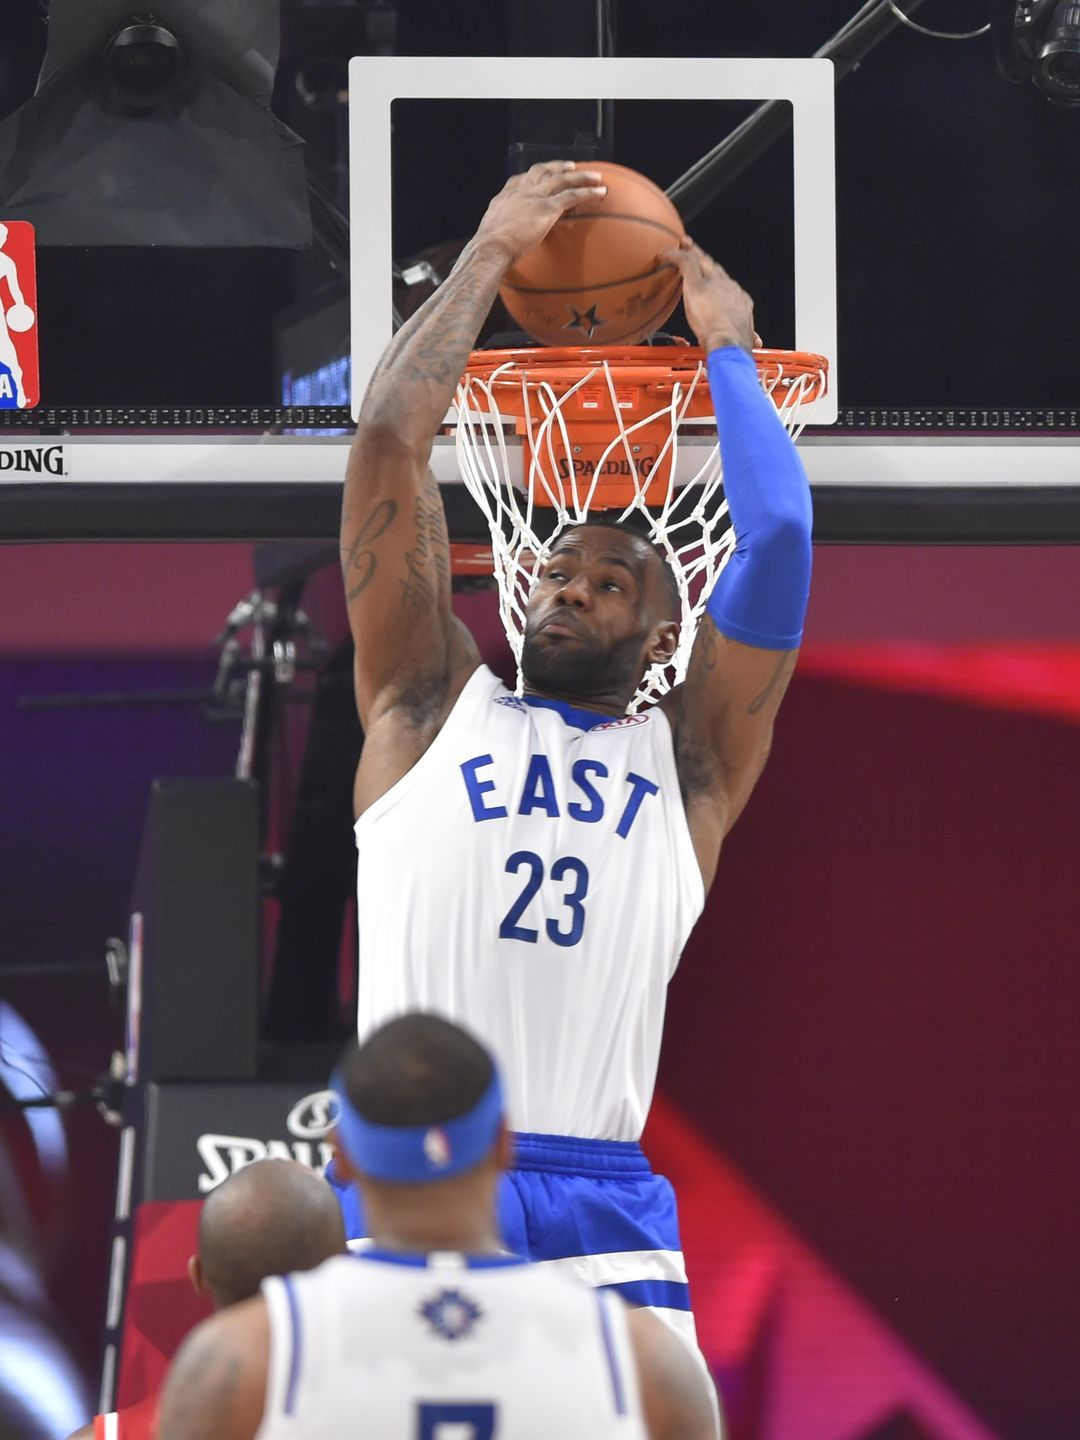 Eastern Conference forward LeBron James dunks in the first